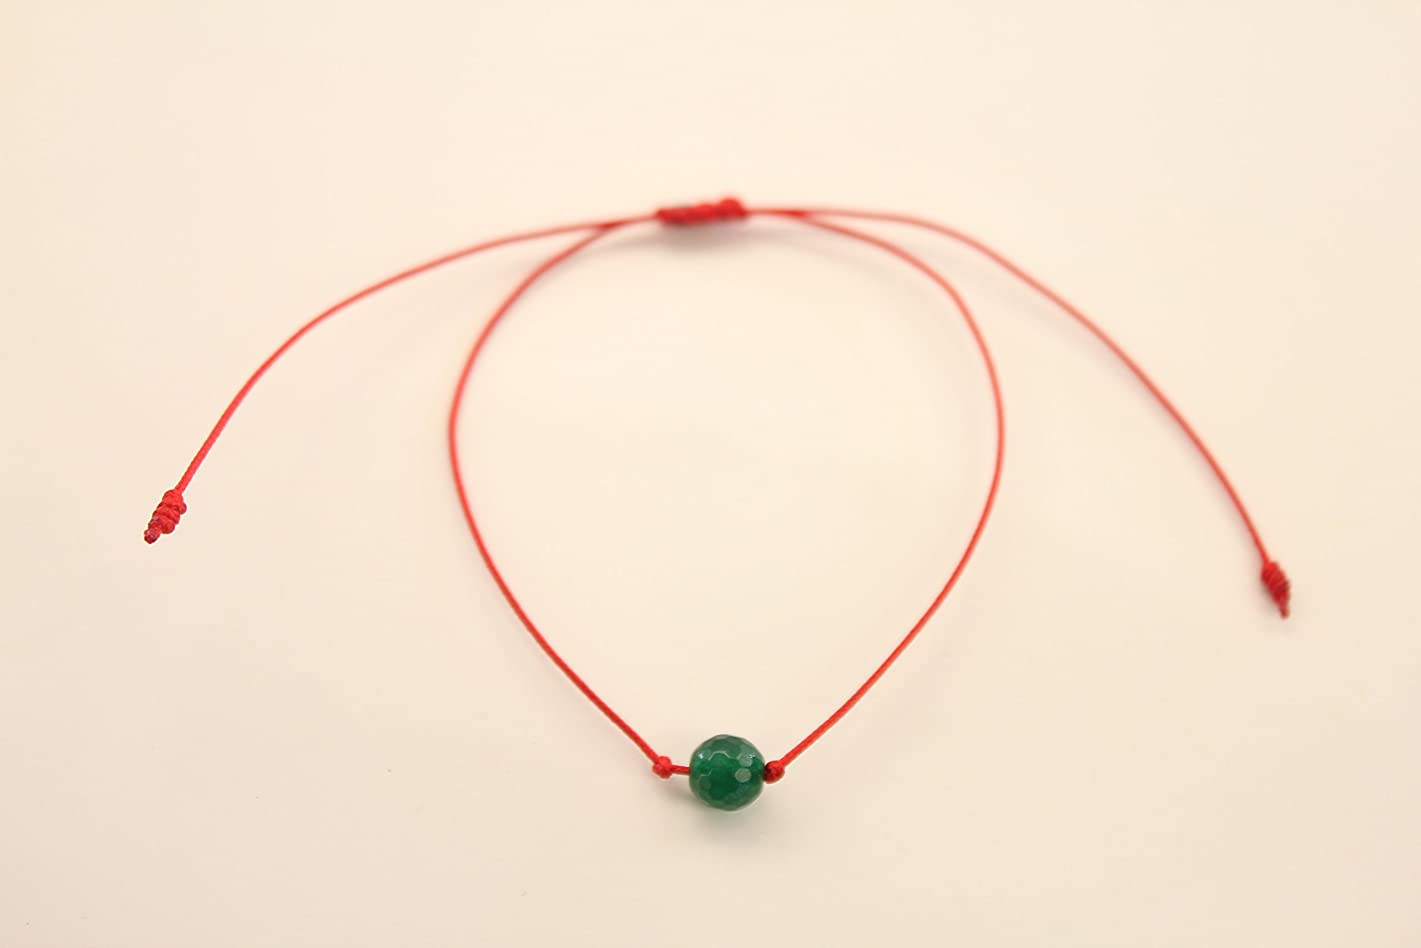 Two Healing and Protective Handles with semiprecious Stones and Quartz of Volcanic Origin | Adjustable Size | for Women and Men | Red Cord. (Spherical Emerald Green Agate)